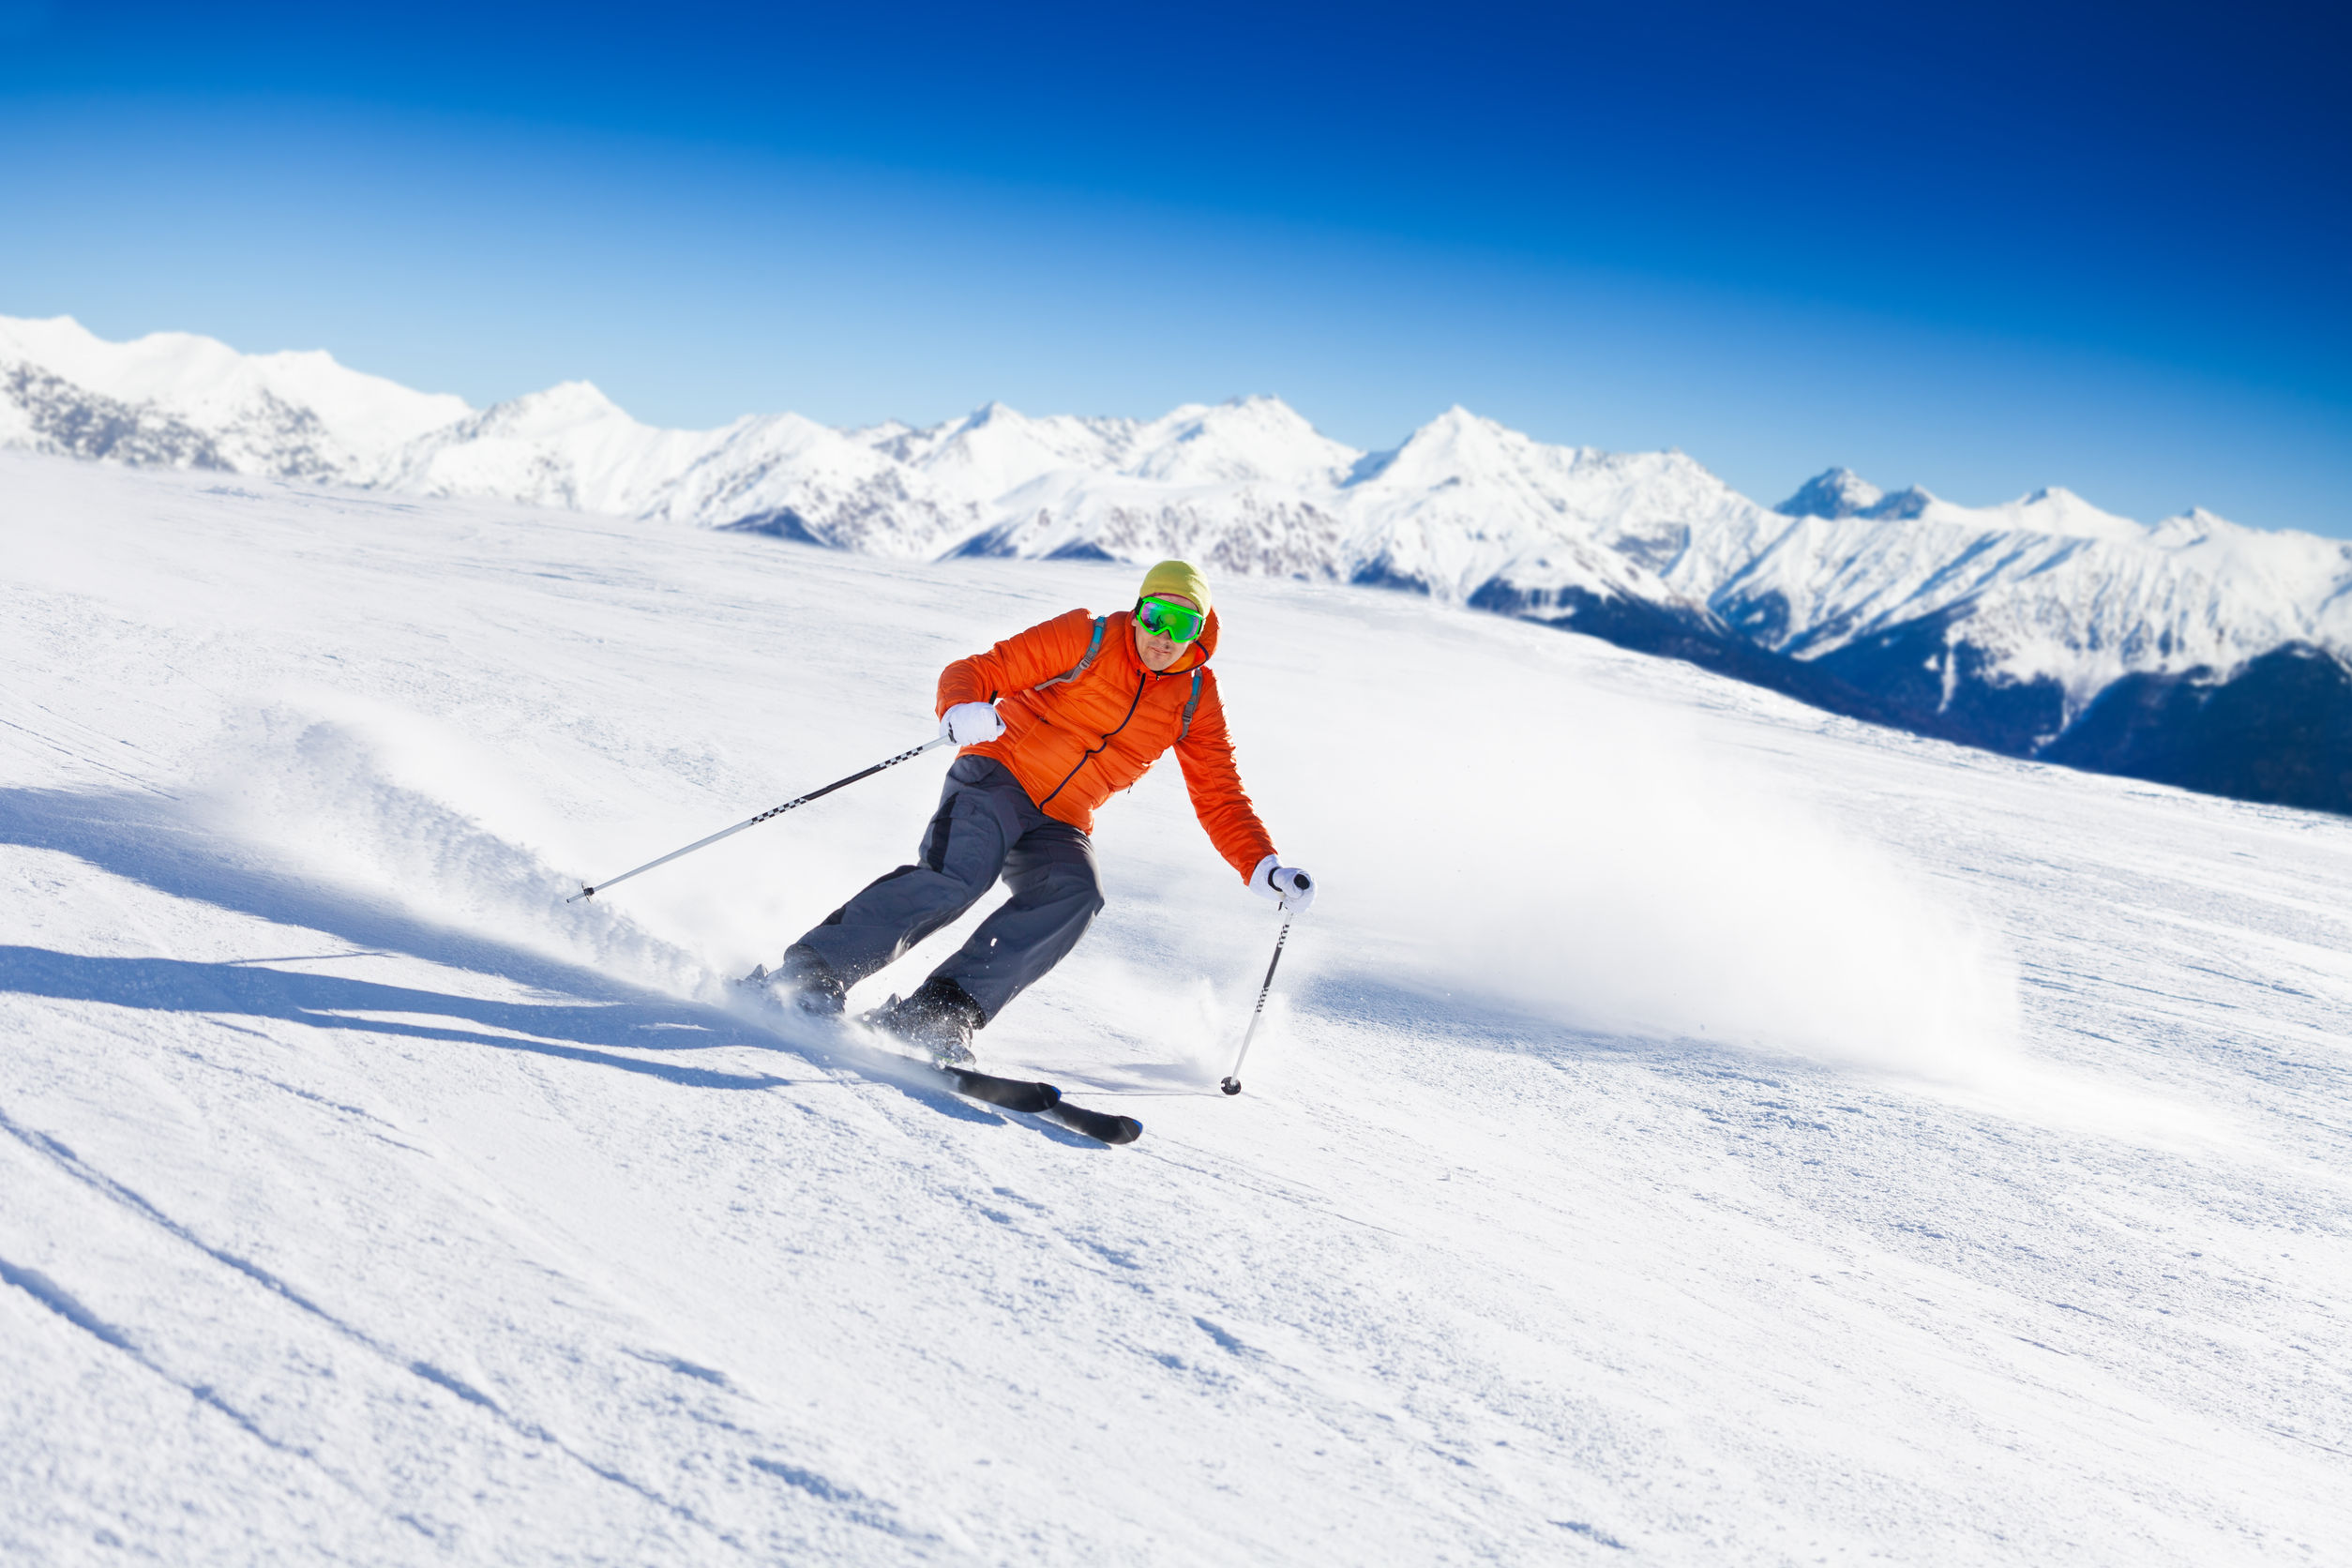 Go skiing in the Alps